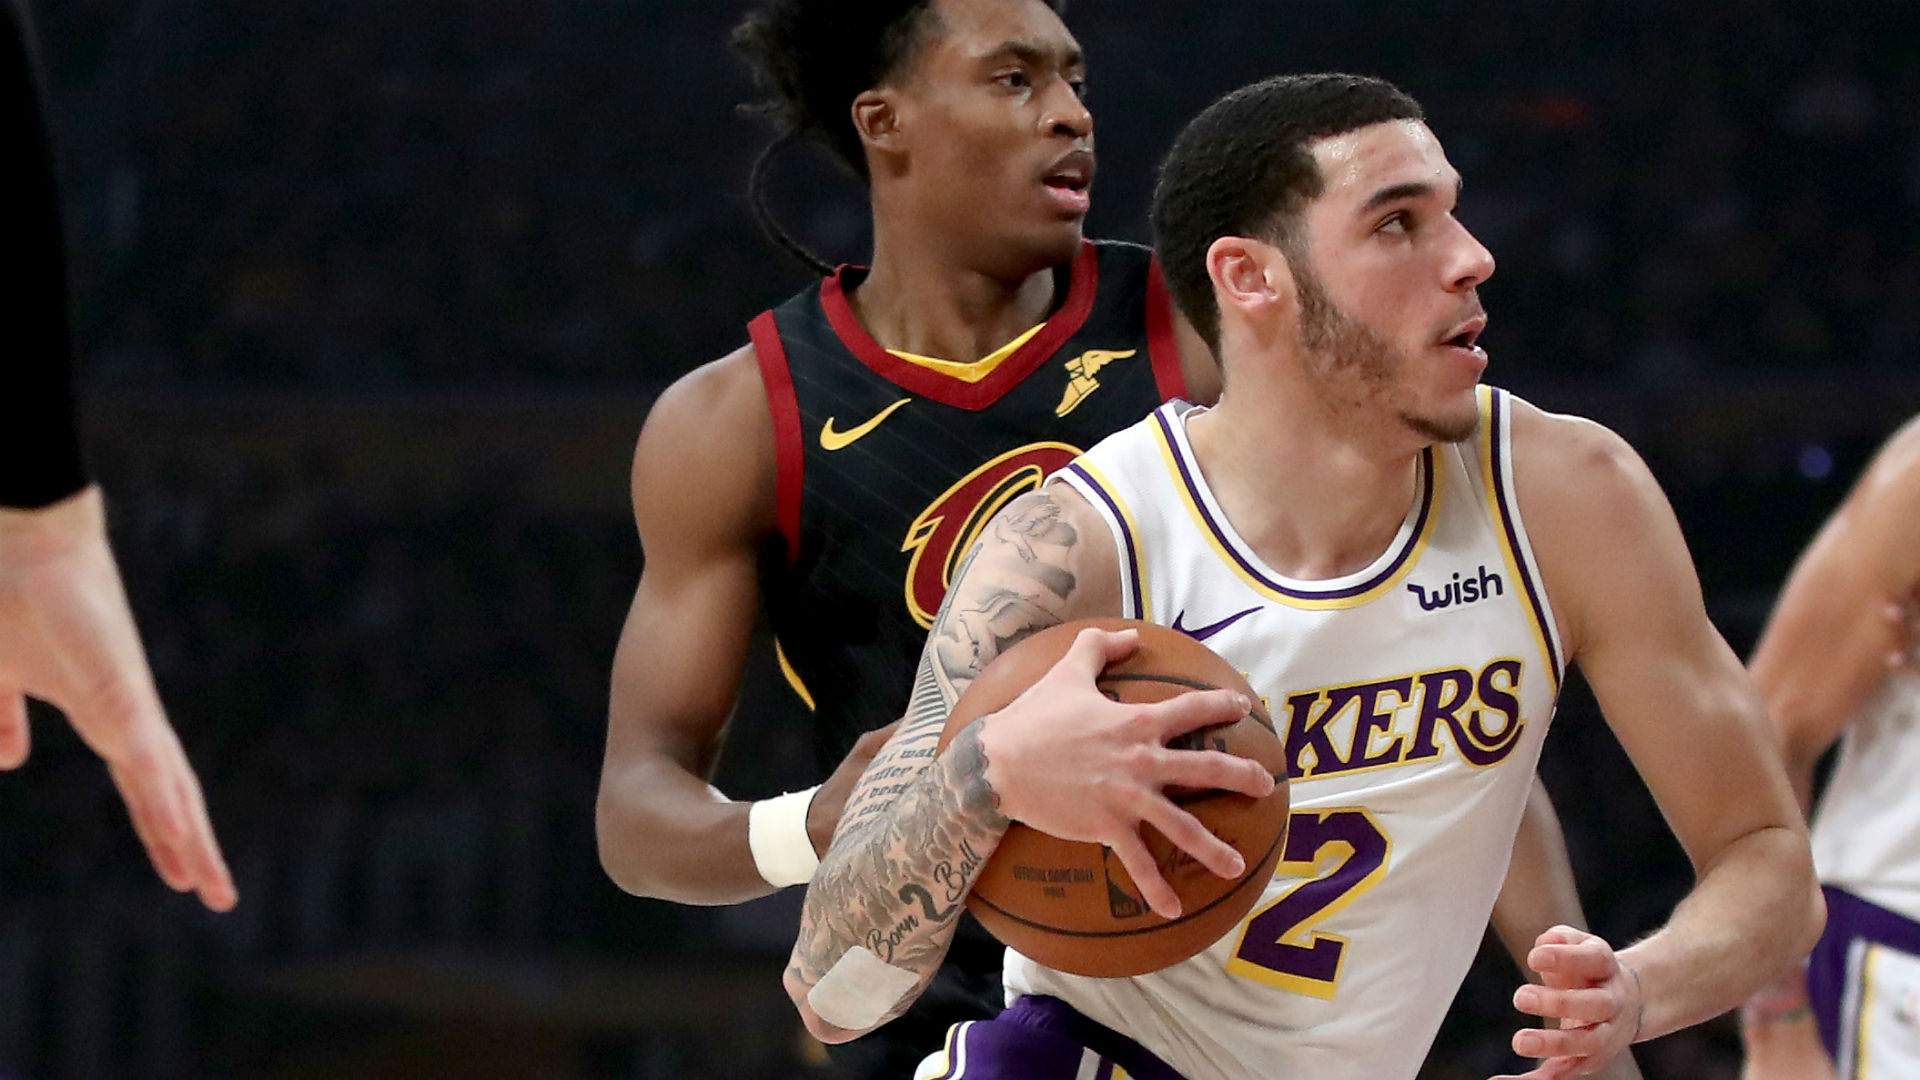 Five takeaways from the Lakers' 107-100 win over the Chicago Bulls